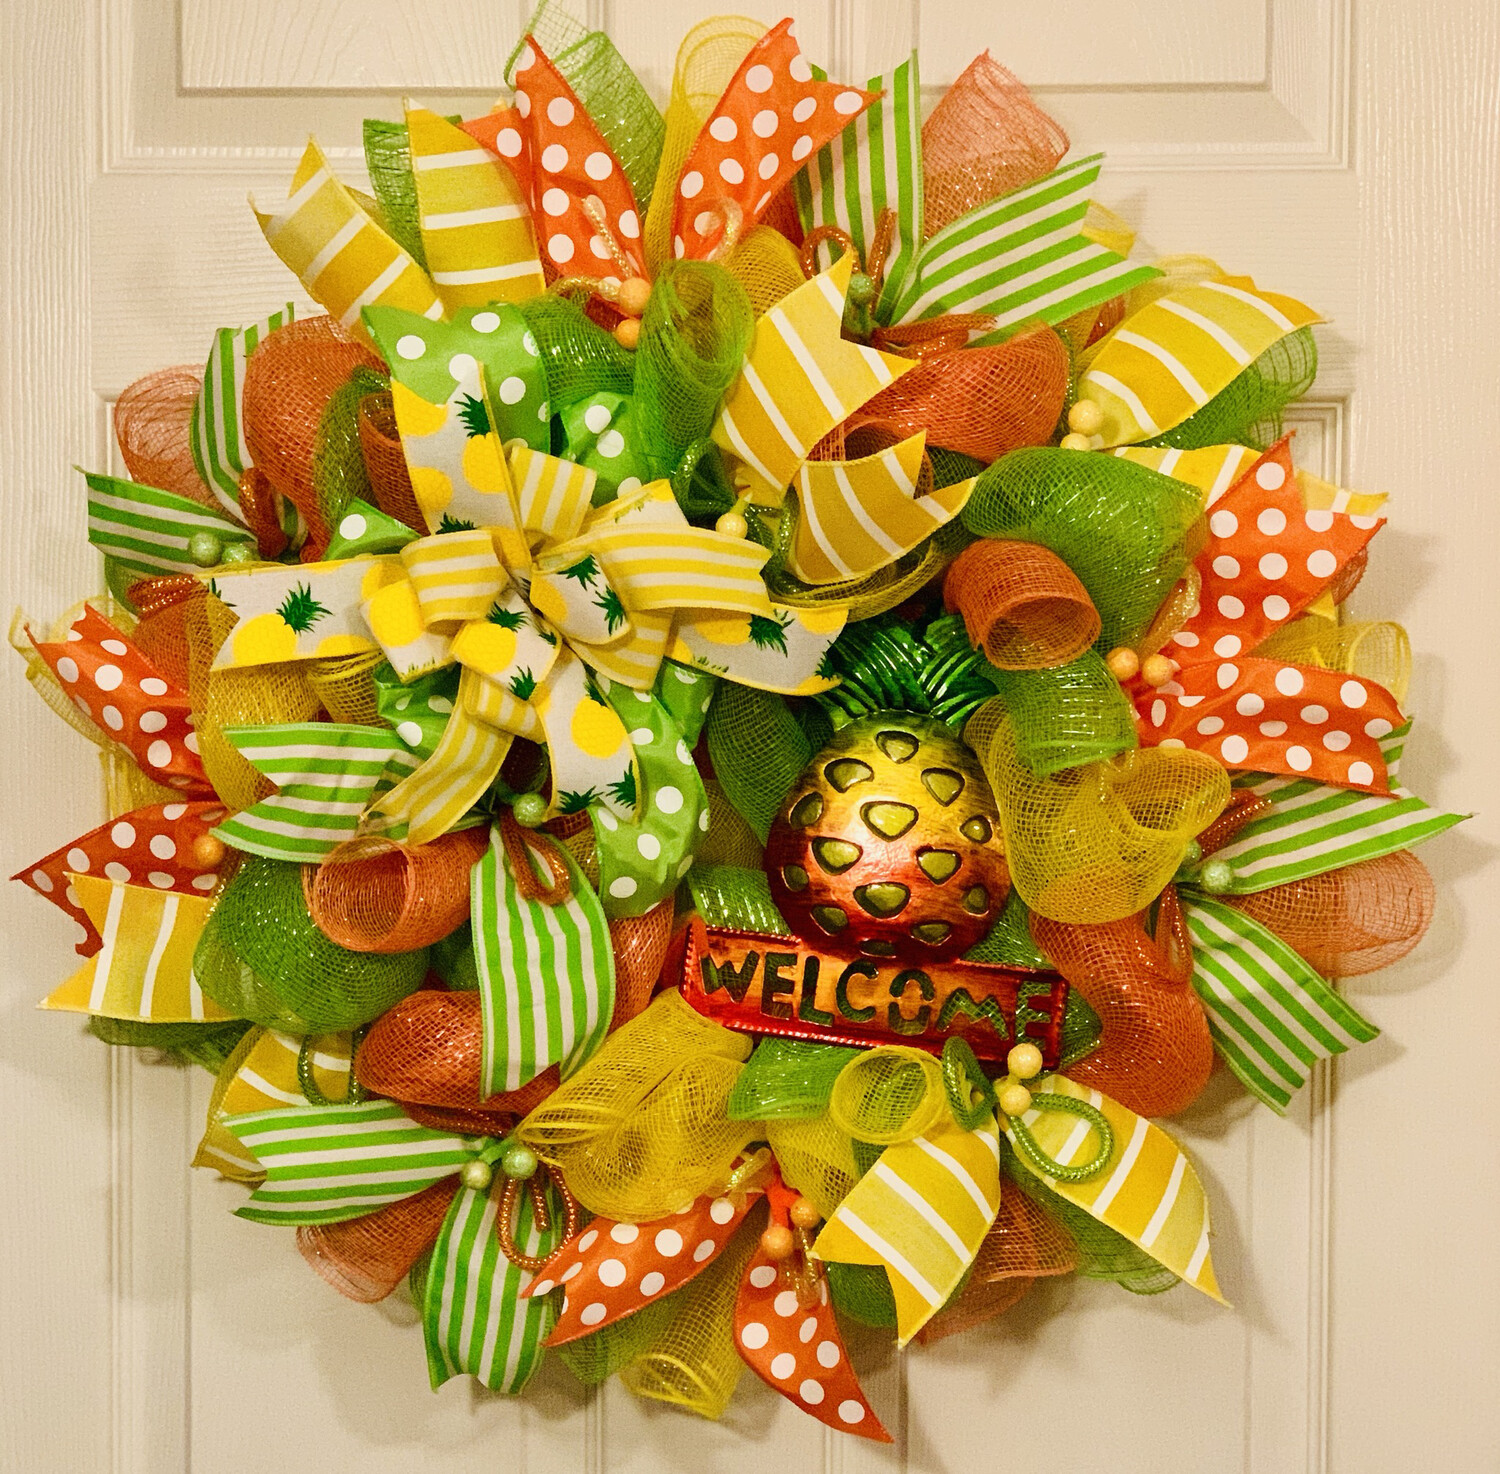 Pineapple Decor, Pineapple Wreath, Welcome Summer Wreath, Yellow Wreath for Front Decor, A Touch of Faith